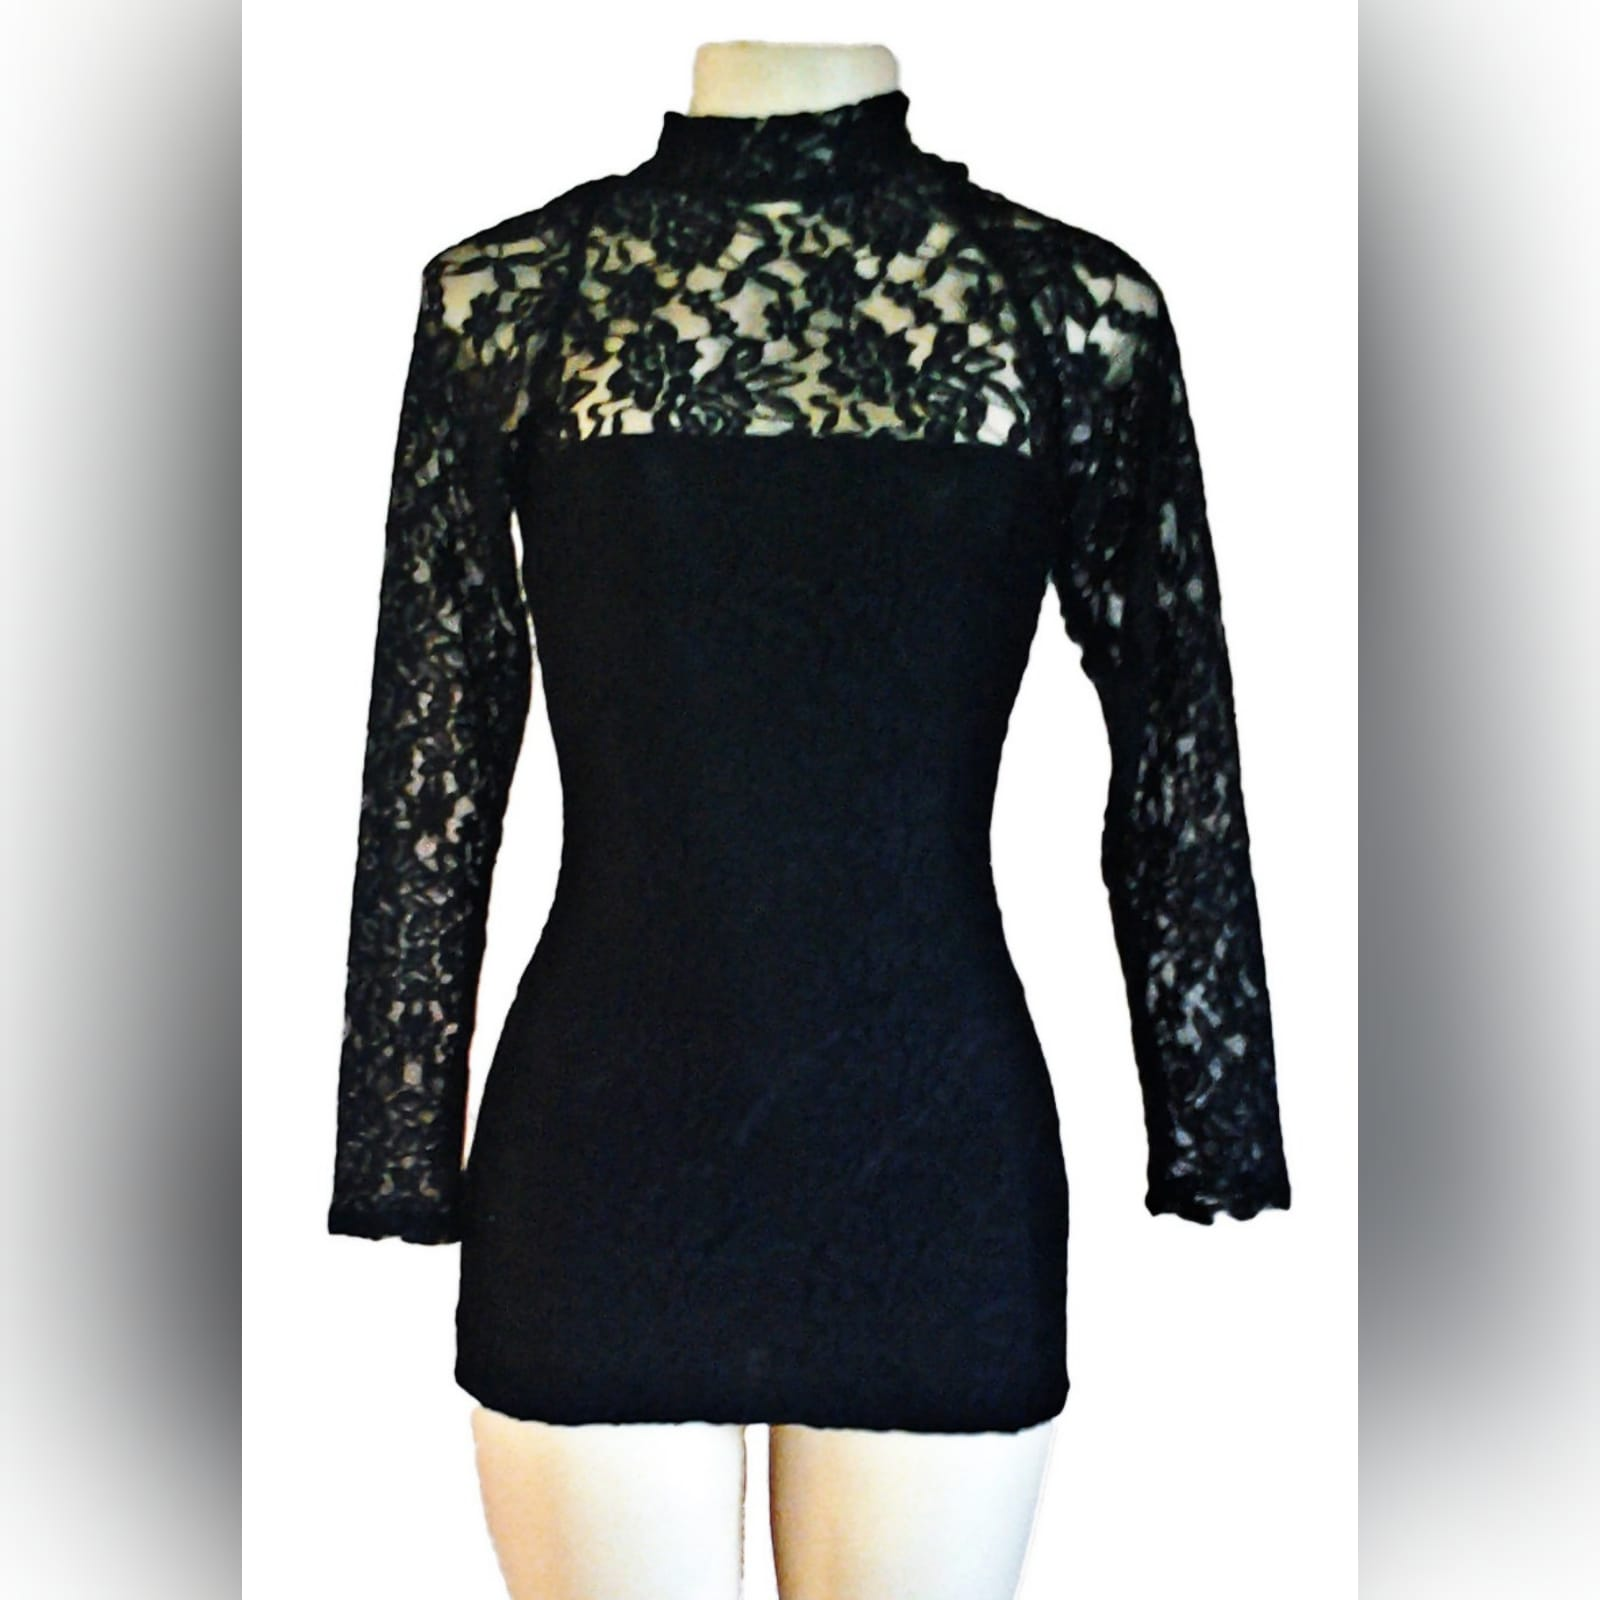 Mini lace black party dress 1 mini lace black party dress with a sheer choker neckline and long lace sleeves